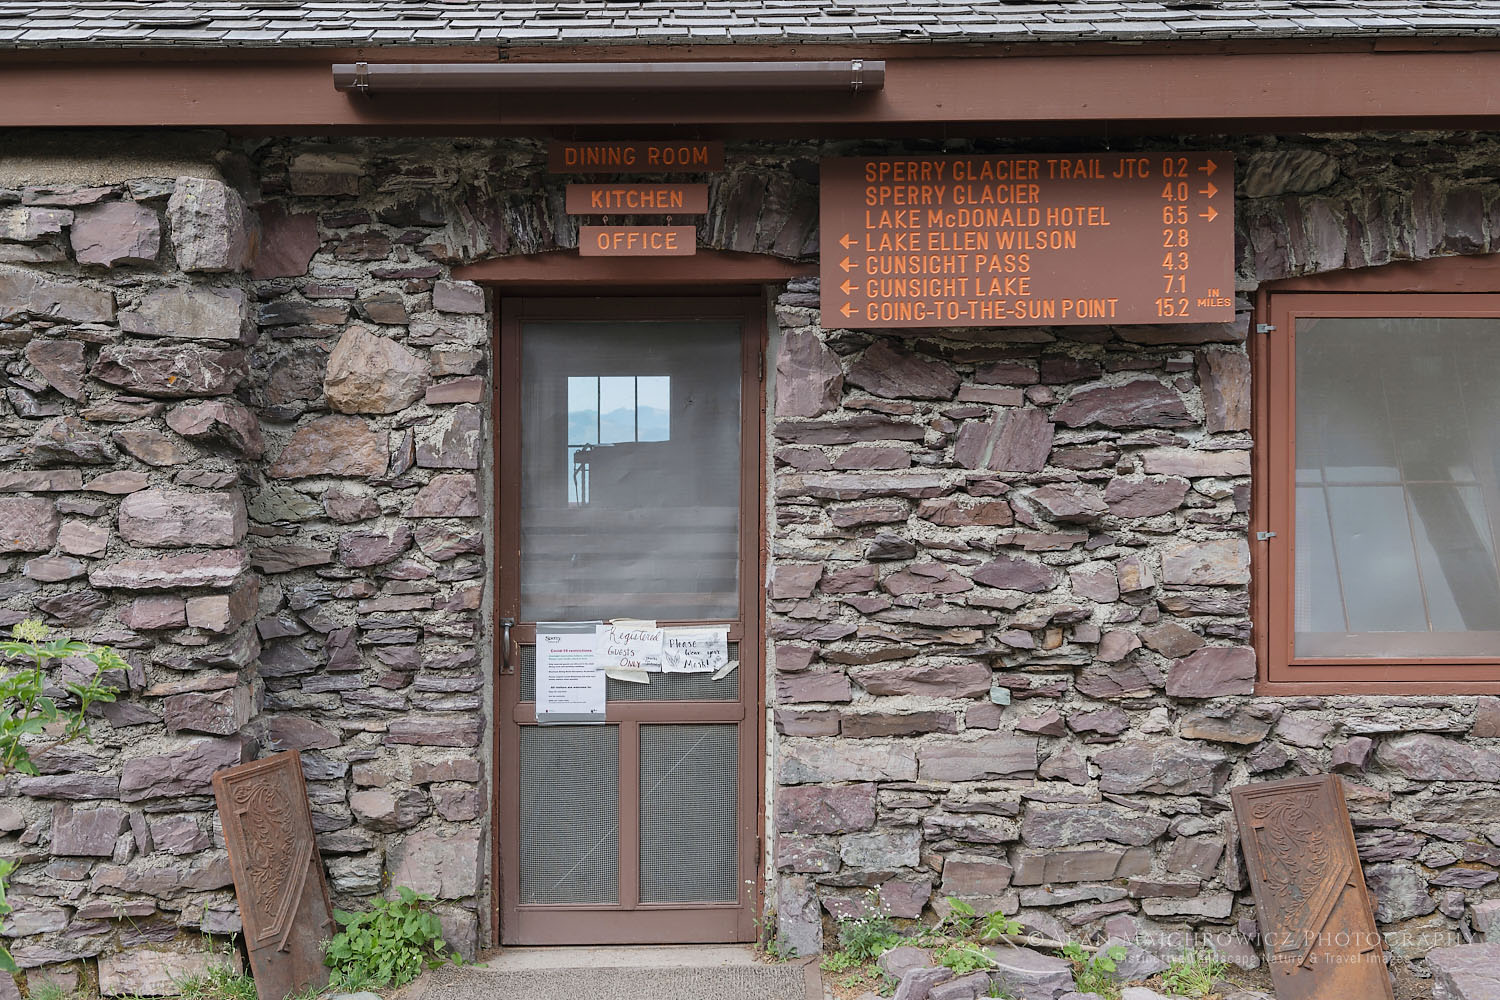 Sperry Chalet cookhouse entrance during Covid 19 Pandemic, Glacier National Park